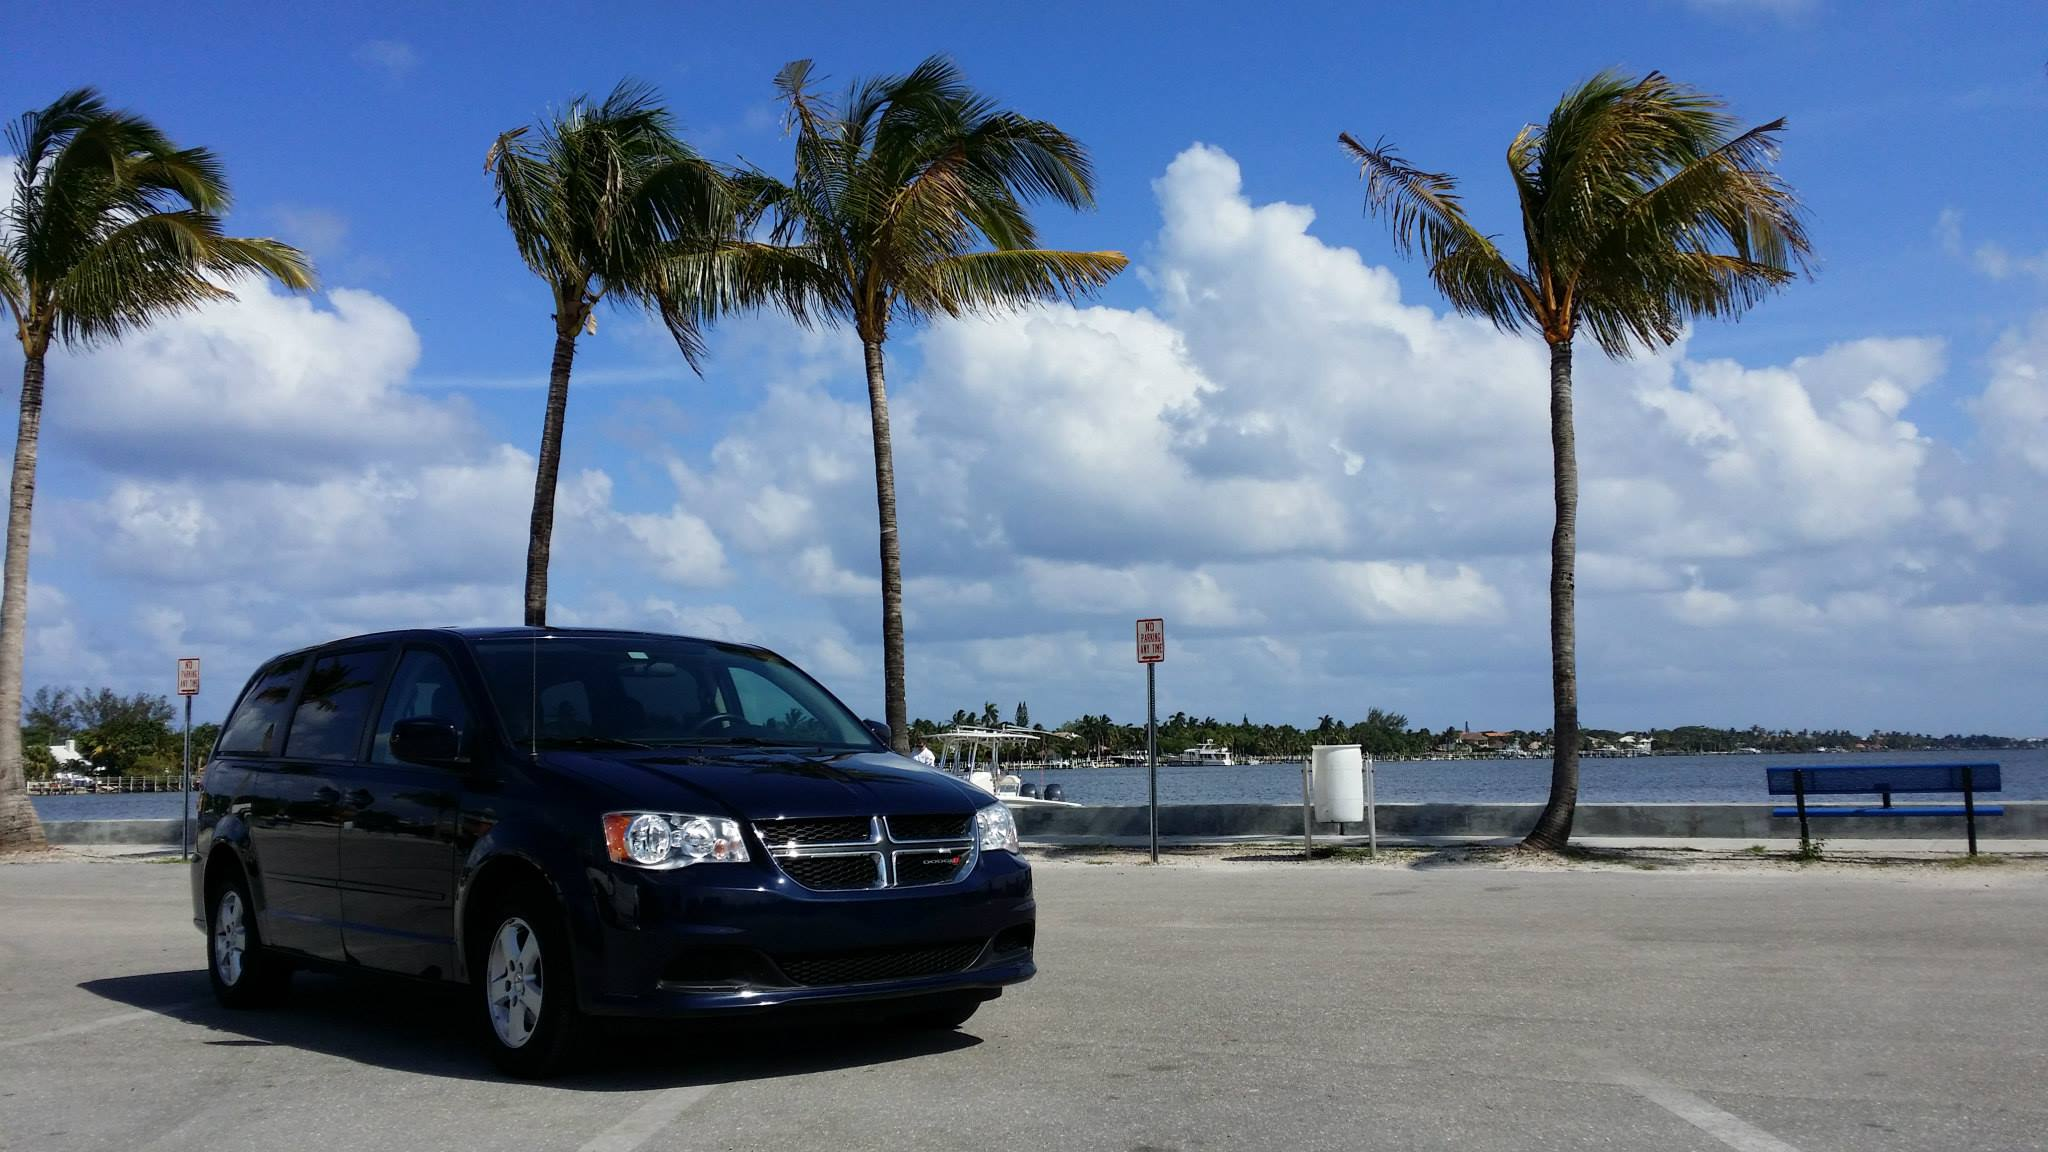 Ambassador Rent A Car - Lake Worth Regulations